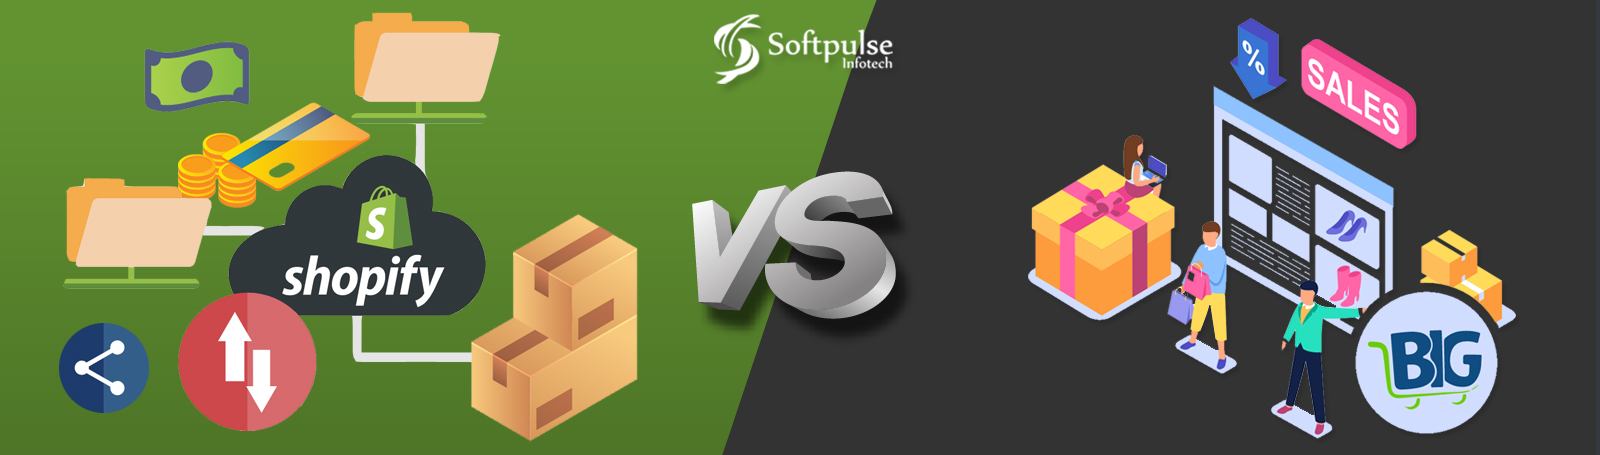 Shopify vs. BigCommerce: Which enterprise solution is right for you?